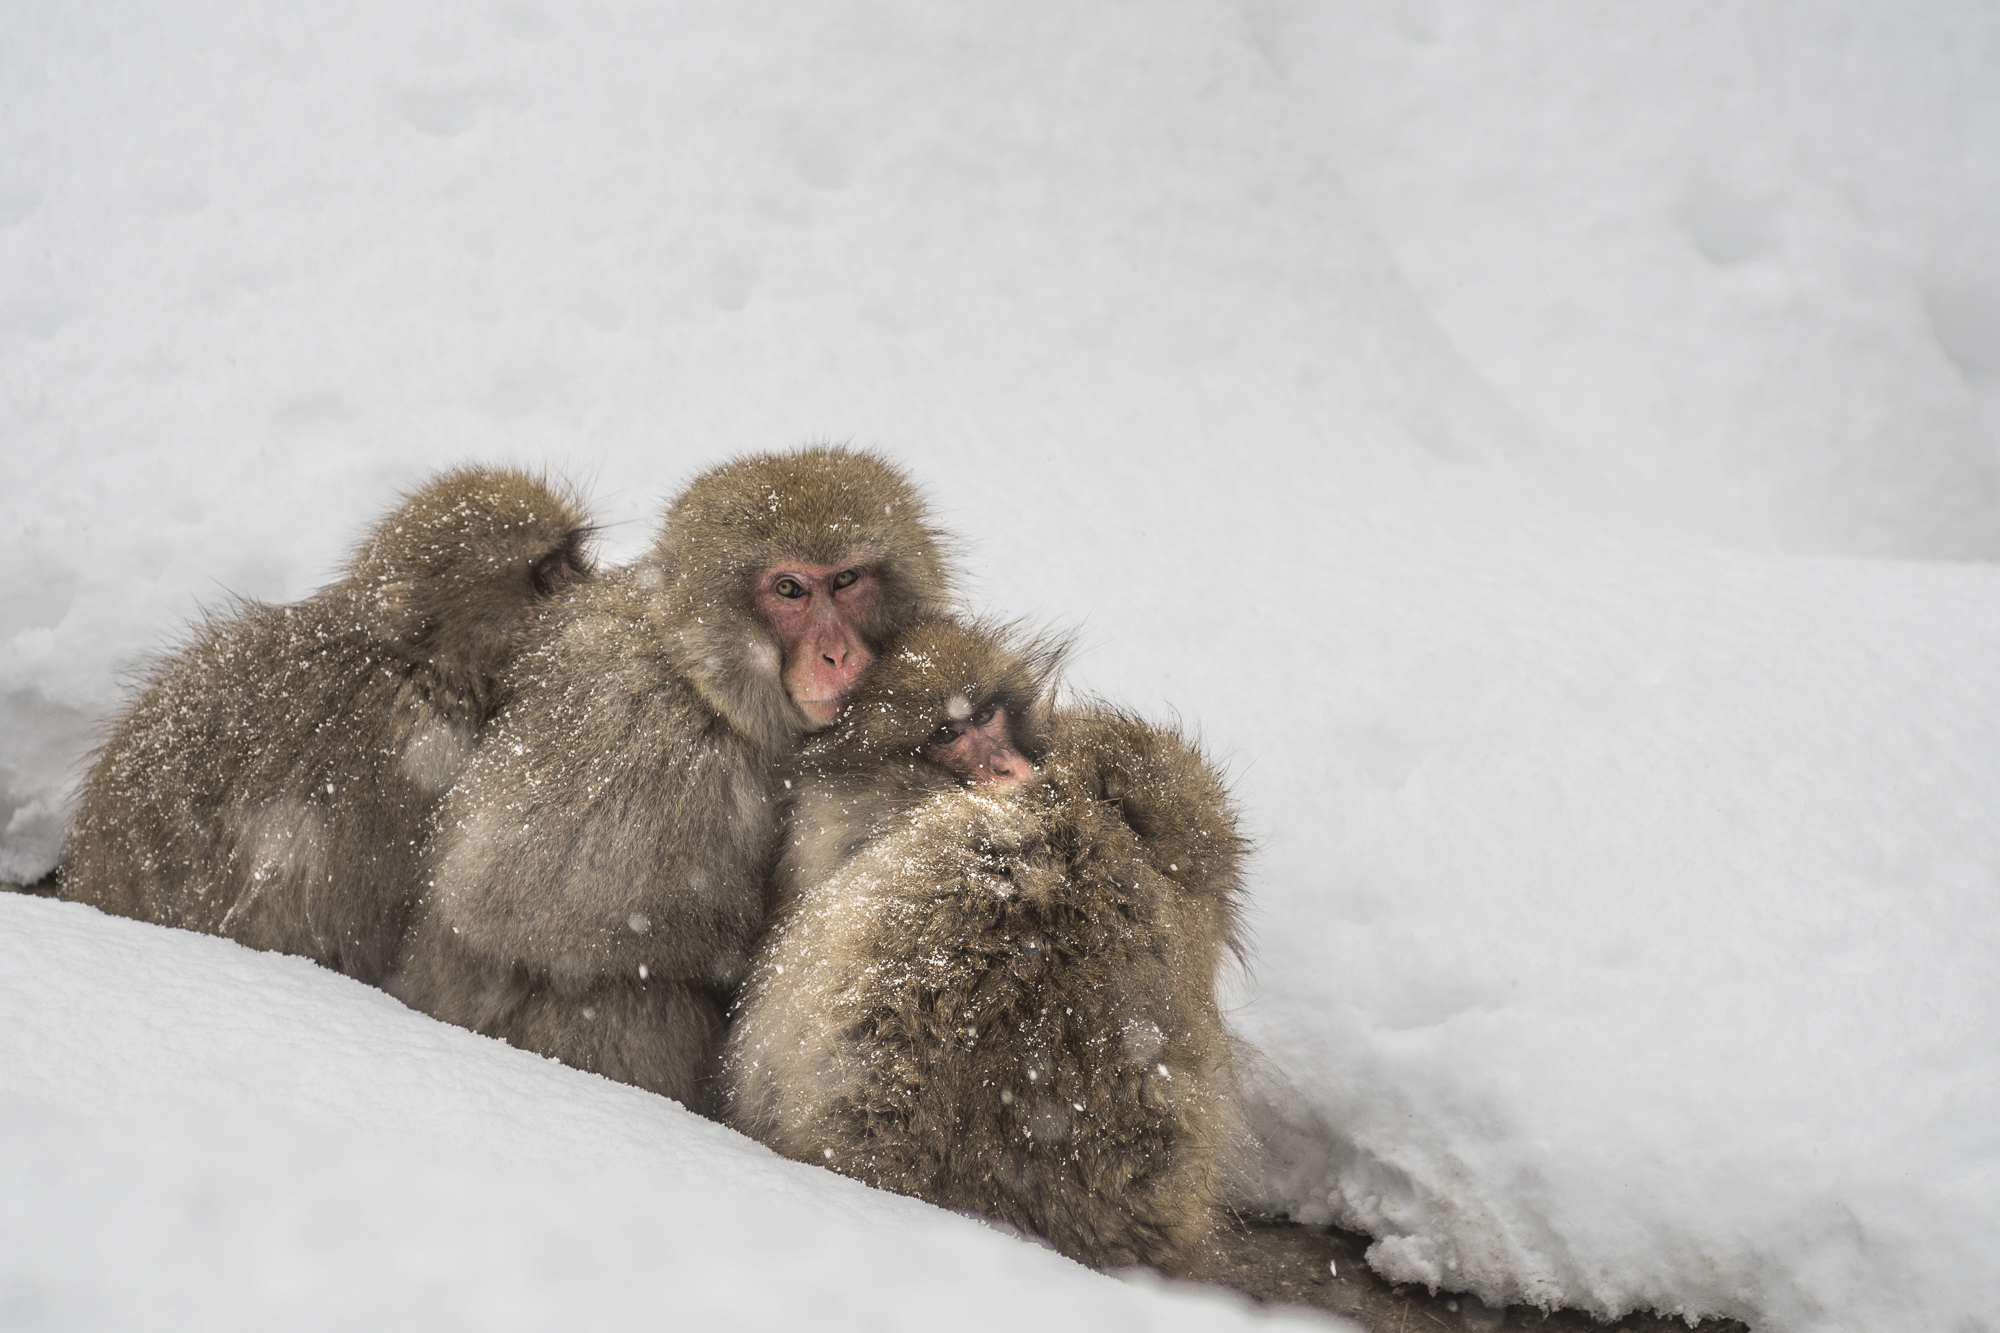 Snow Monkeys in the hills of Jigokunda